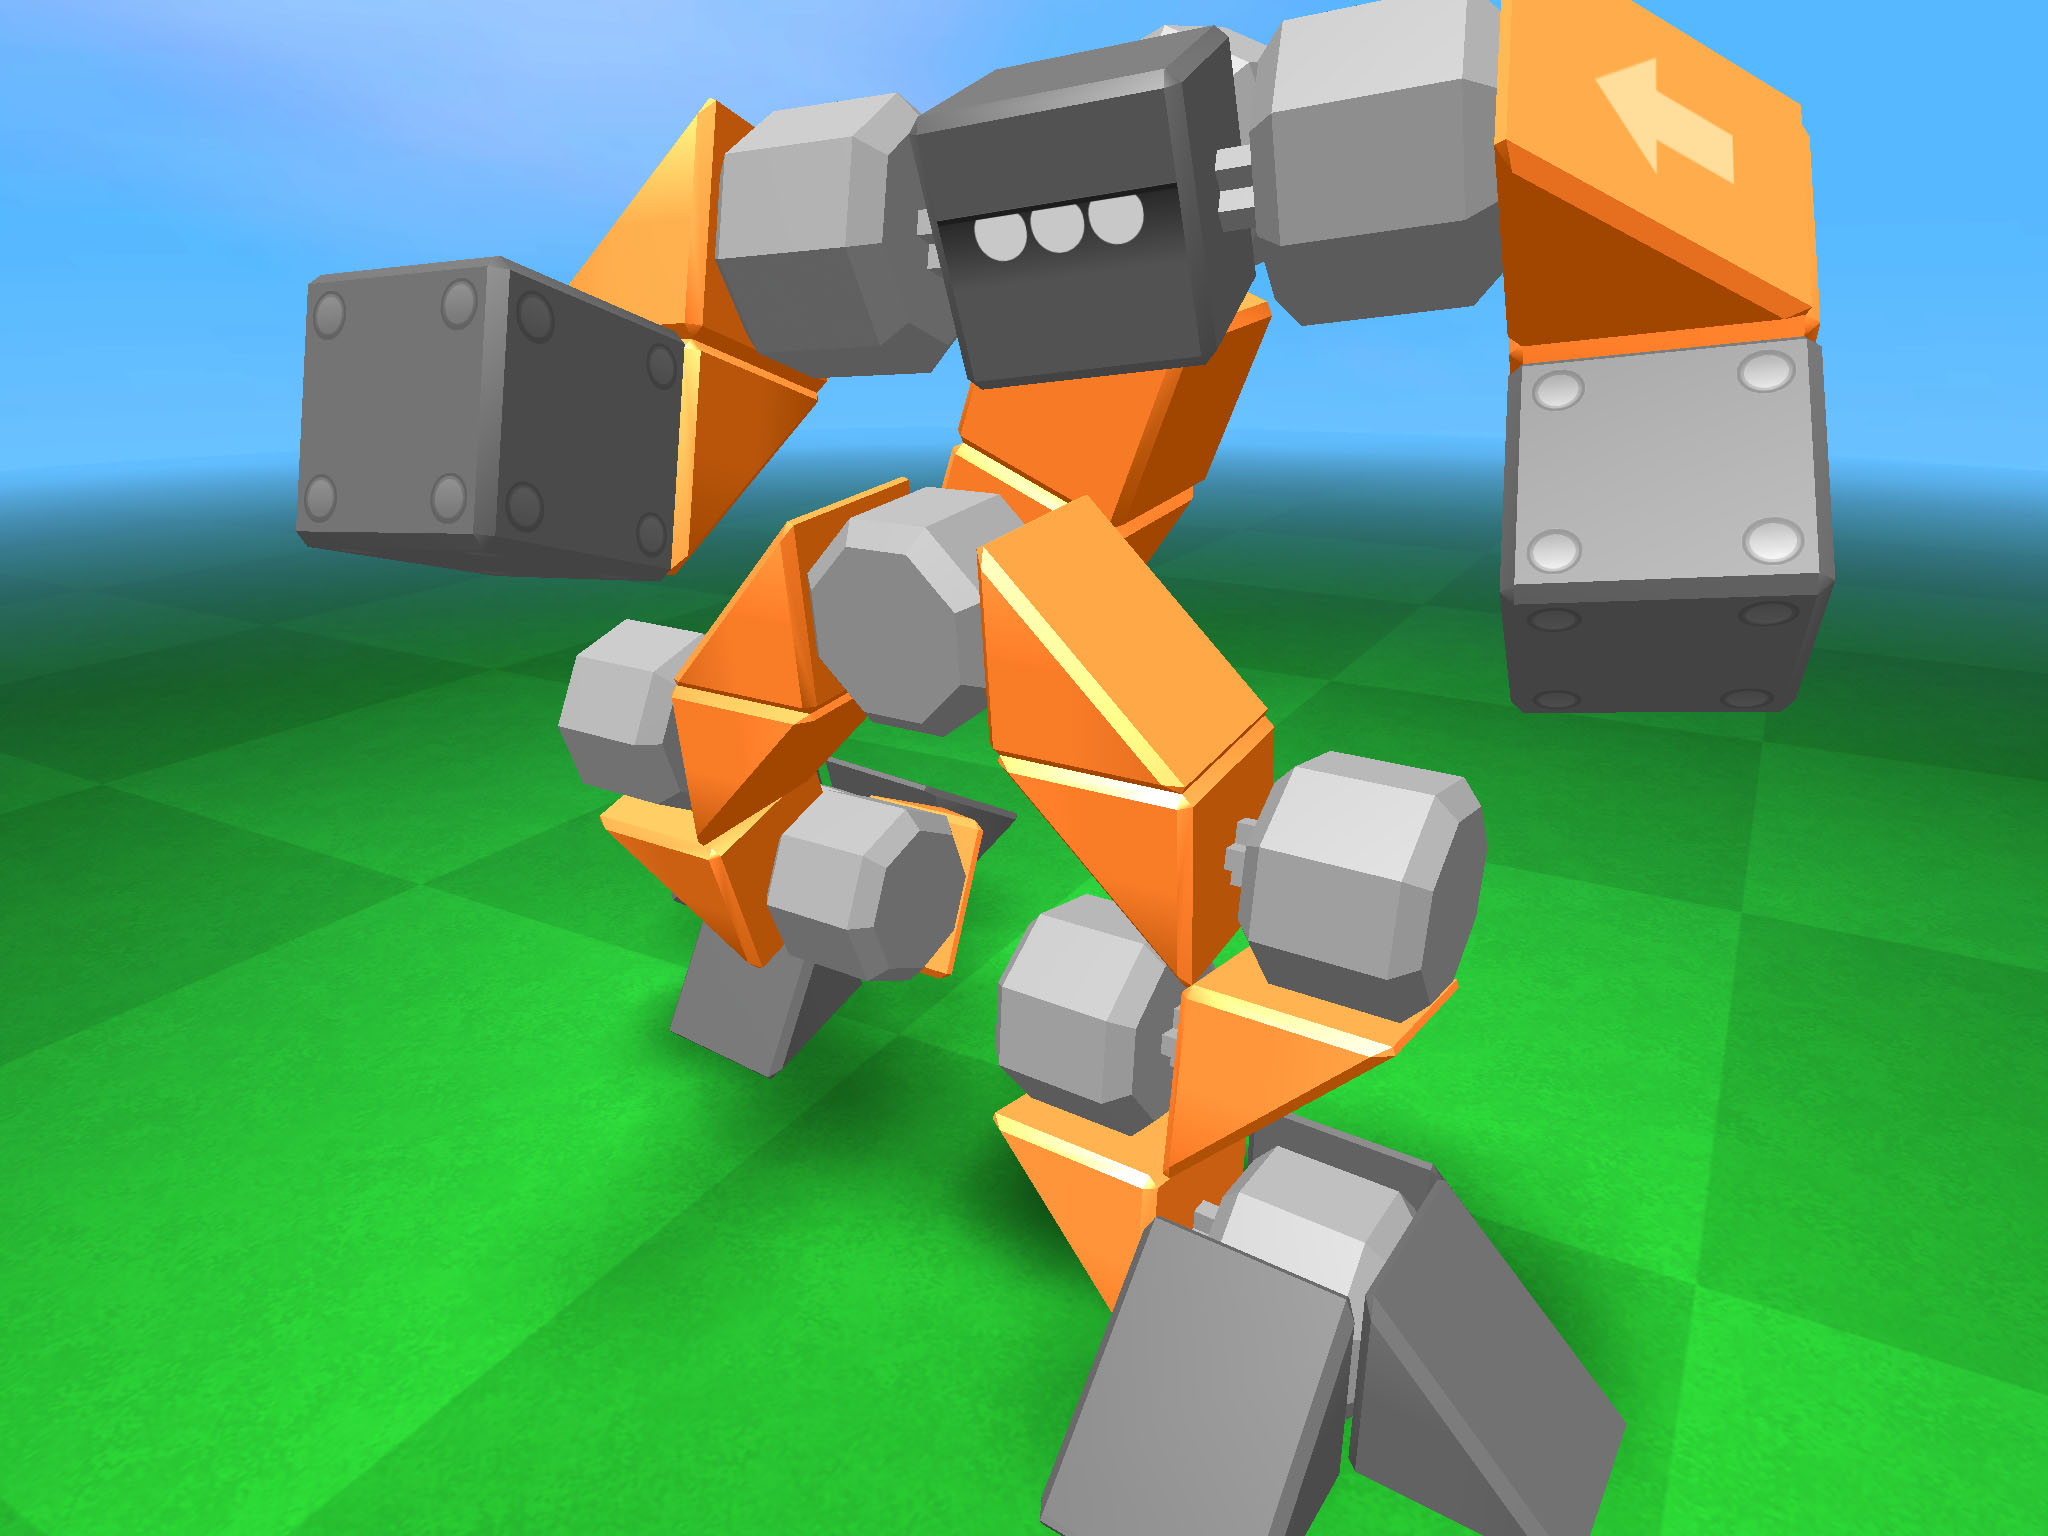 Blocksworld launches, already top grossing education app in Sweden